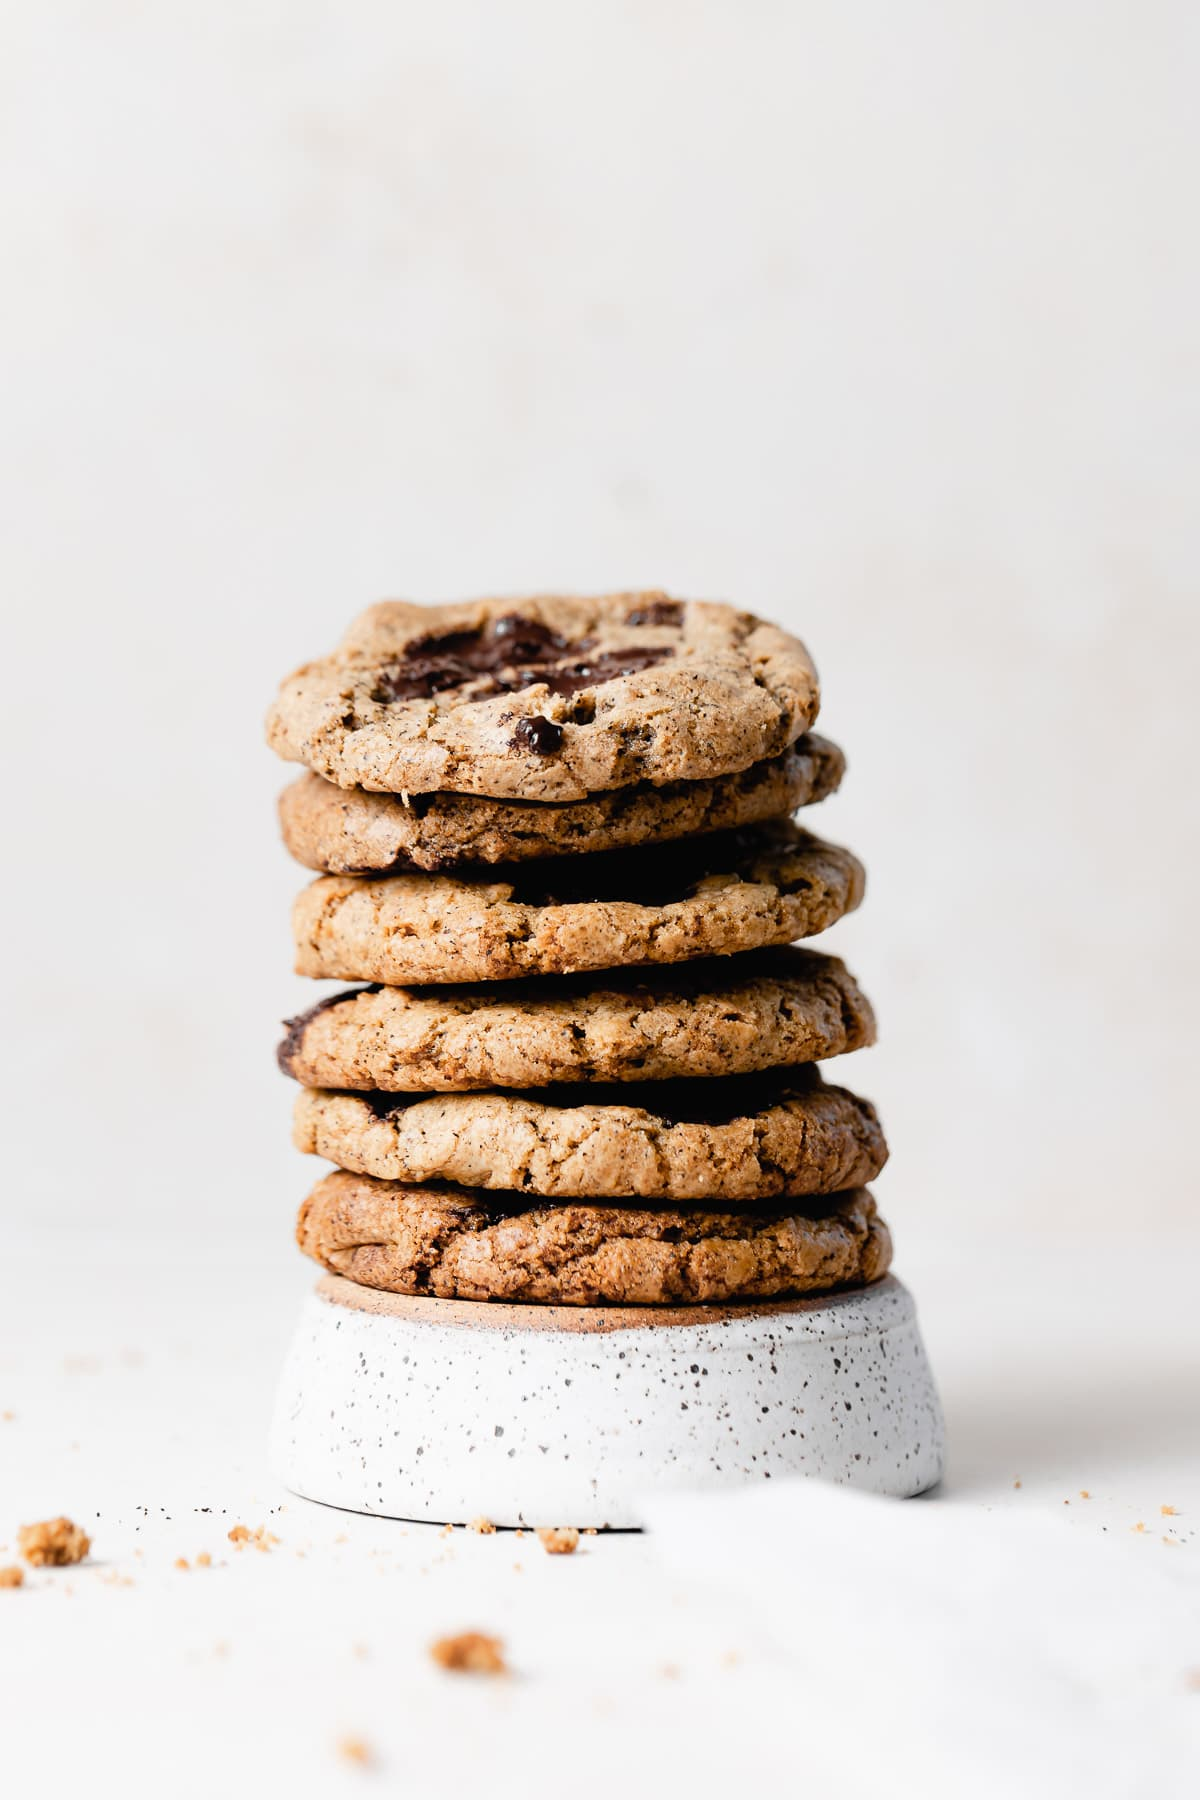 a stack of cookies on a white dish